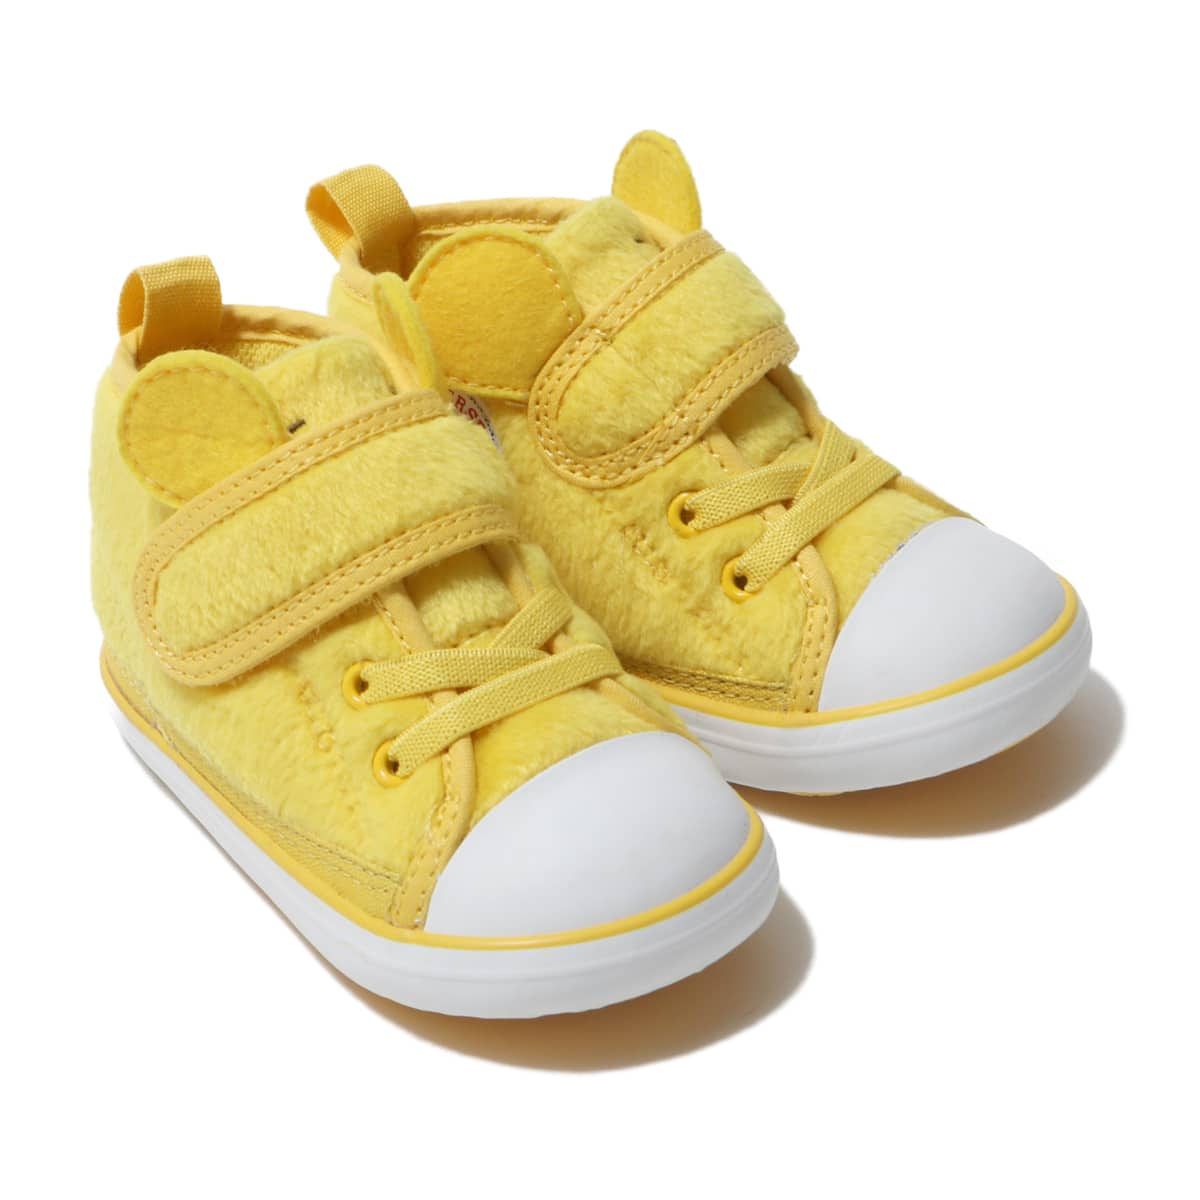 CONVERSE BABY ALL STAR N POOH FC V-1 YELLOW 19FW-I_photo_large